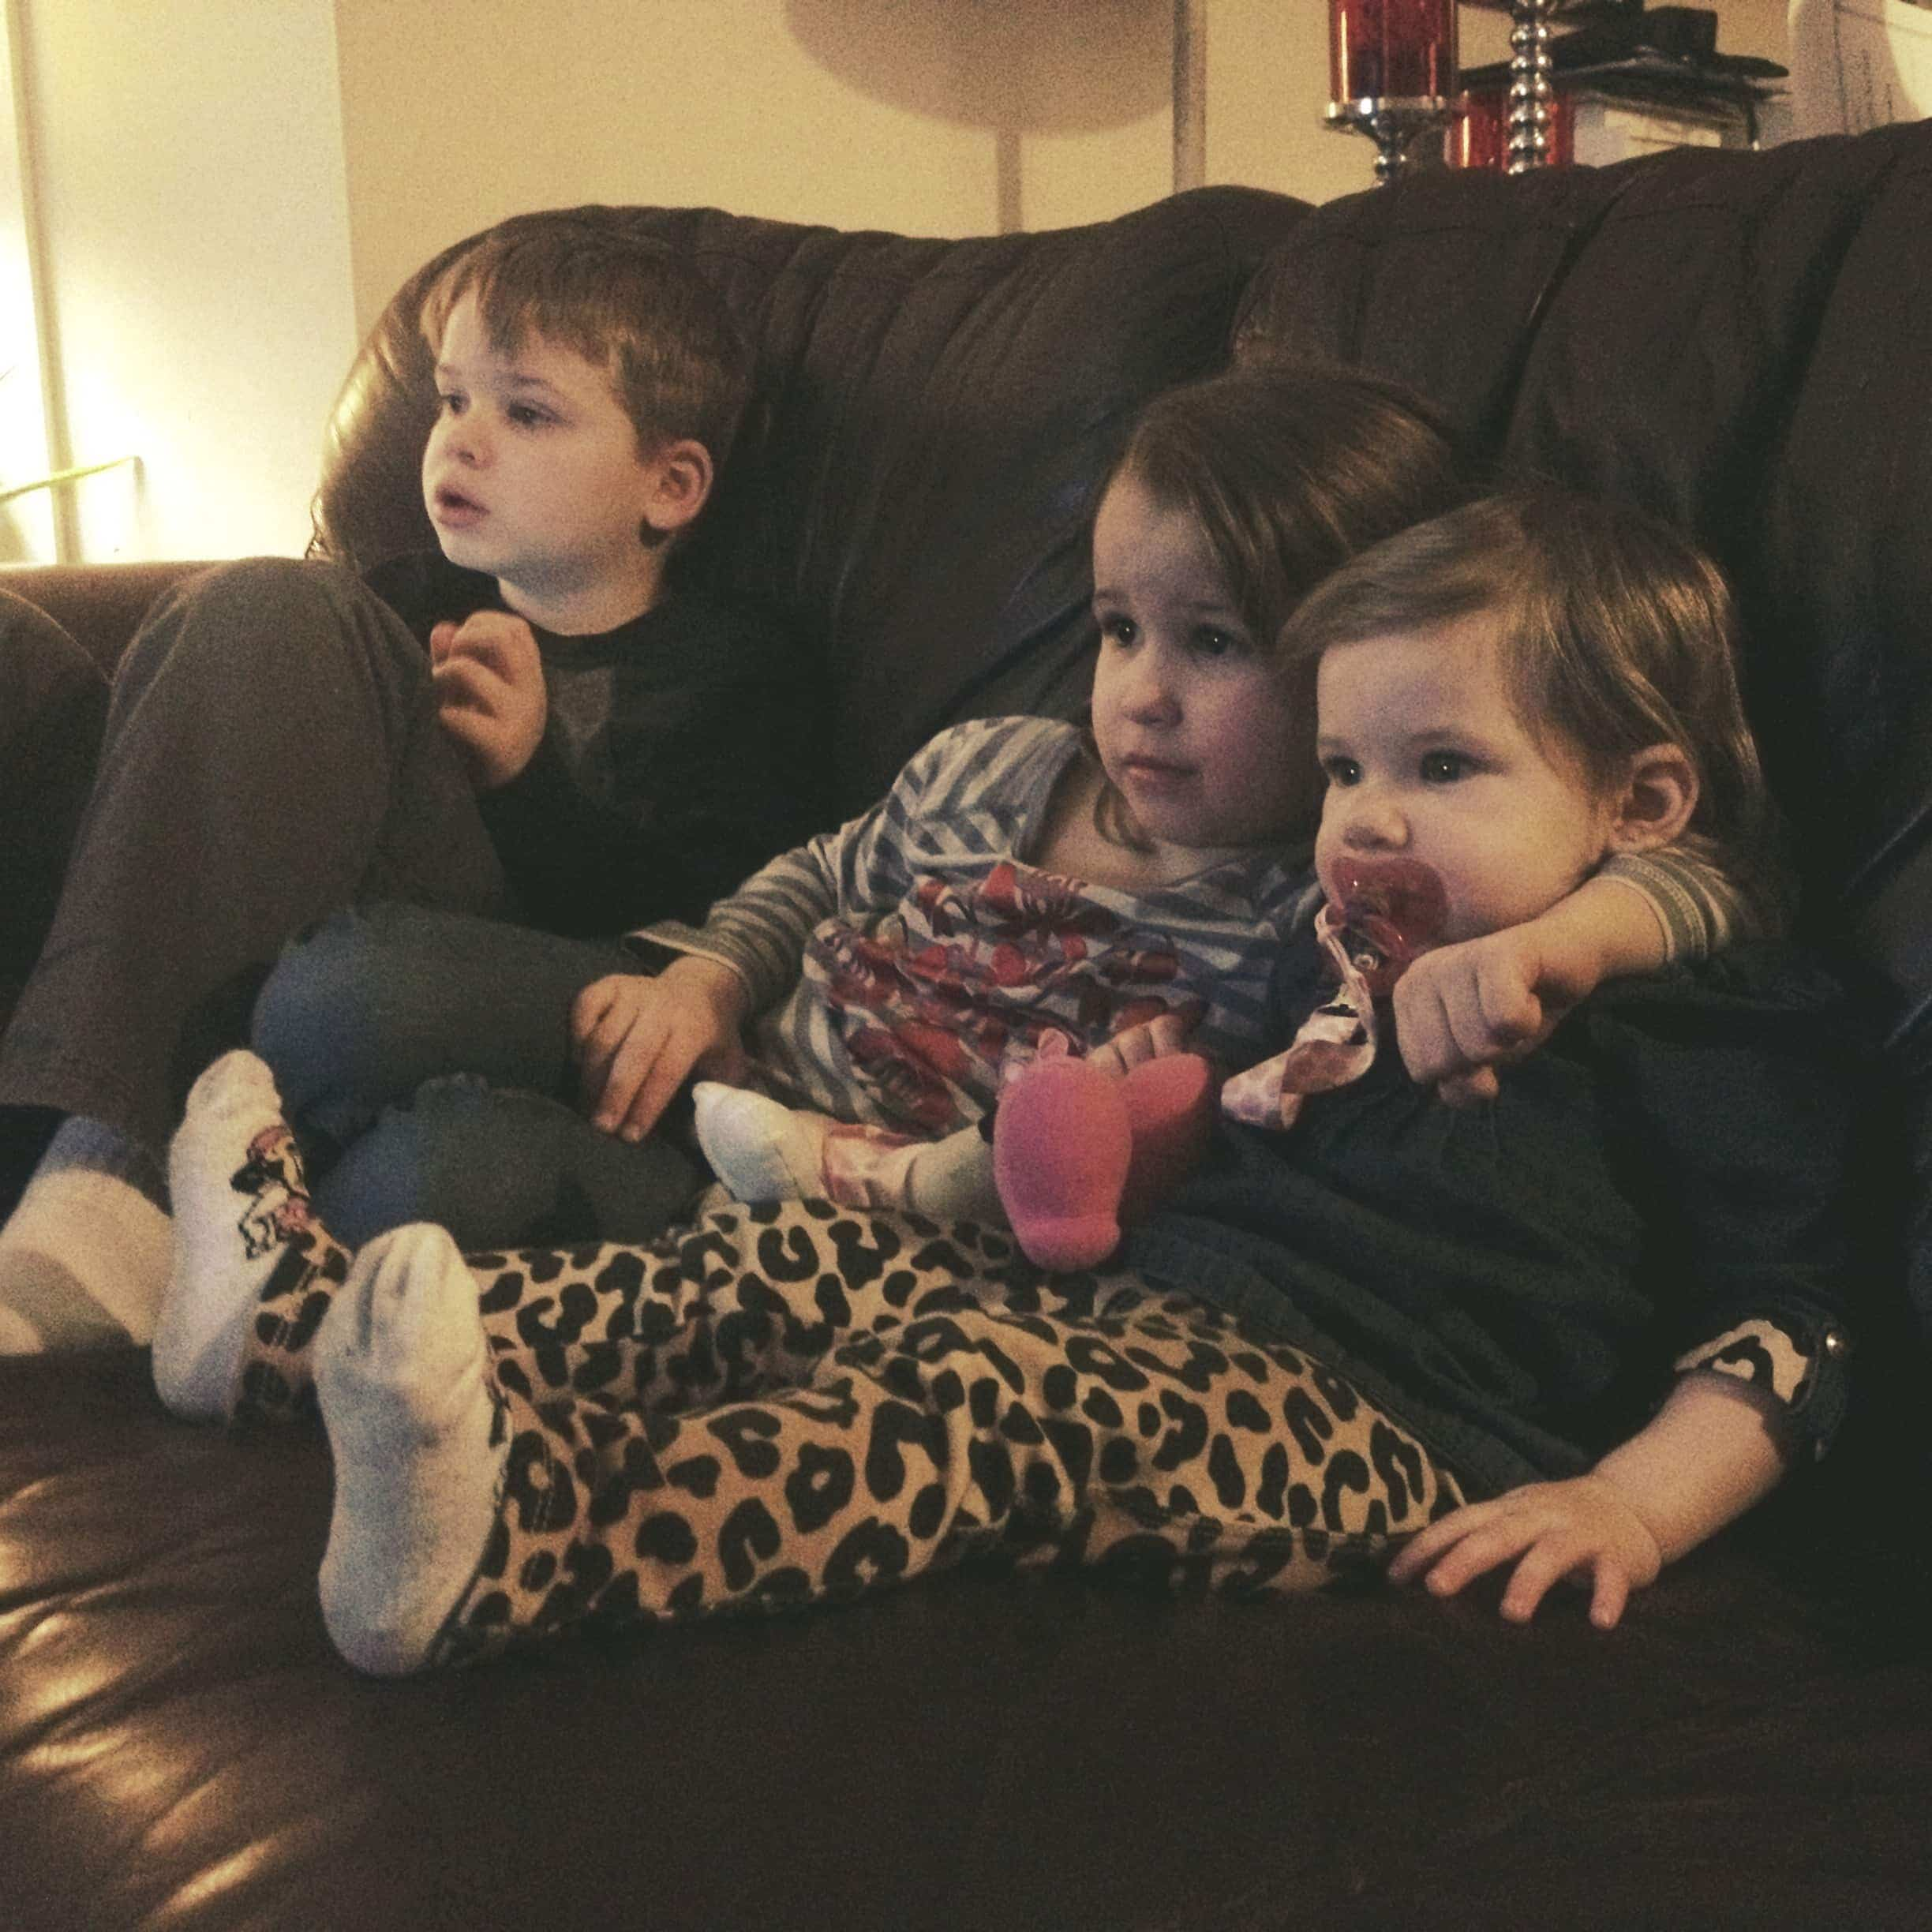 3 cousins sitting together and cuddling on leather couch